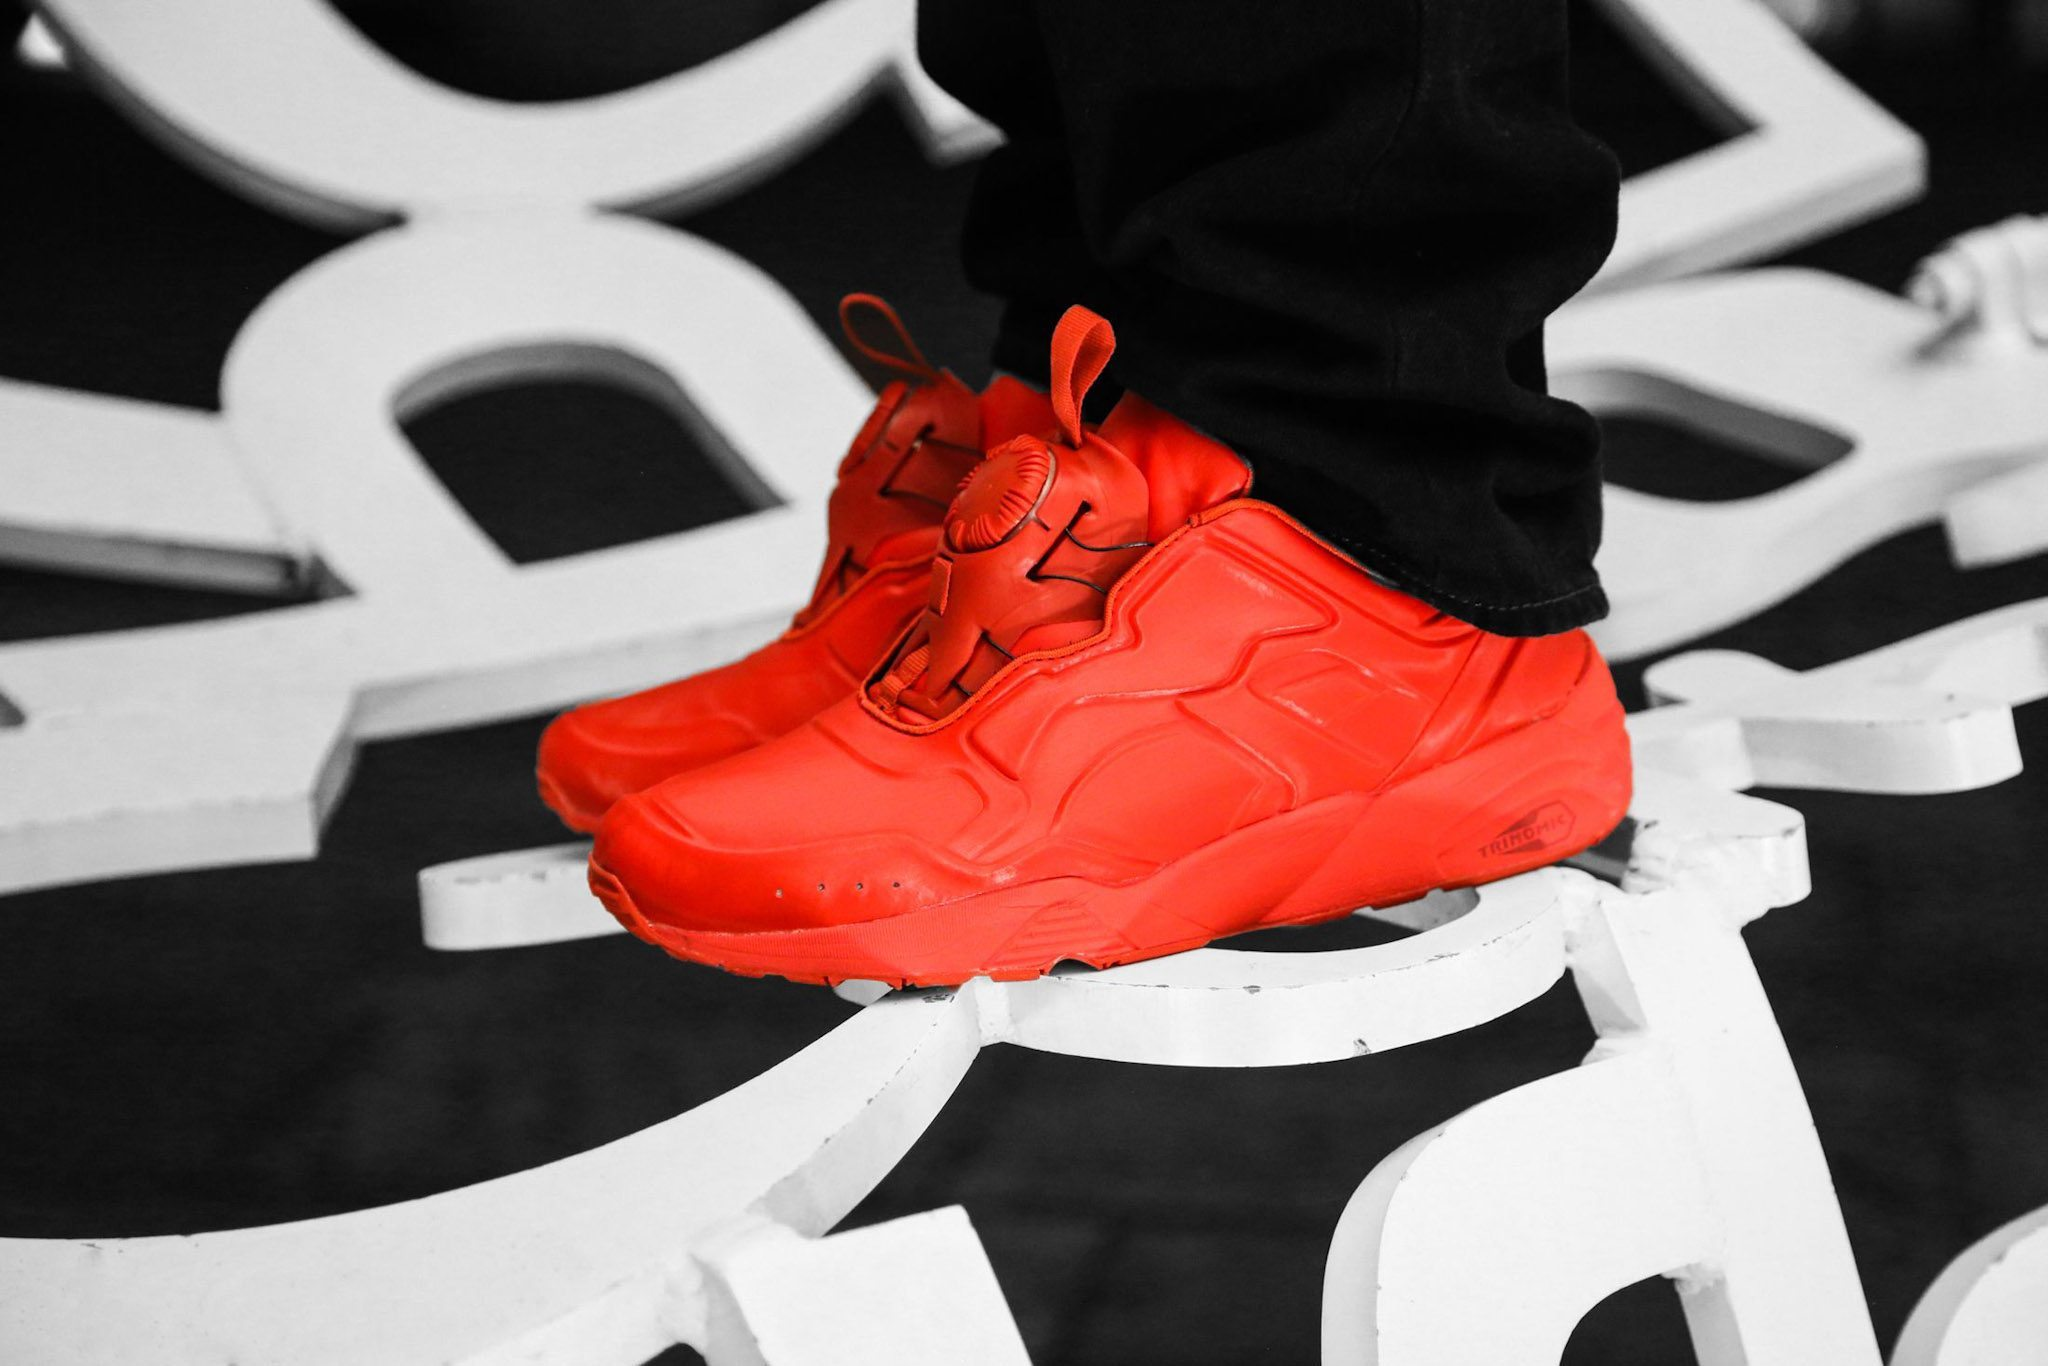 PUMA DISC 89 All Red All Black 1